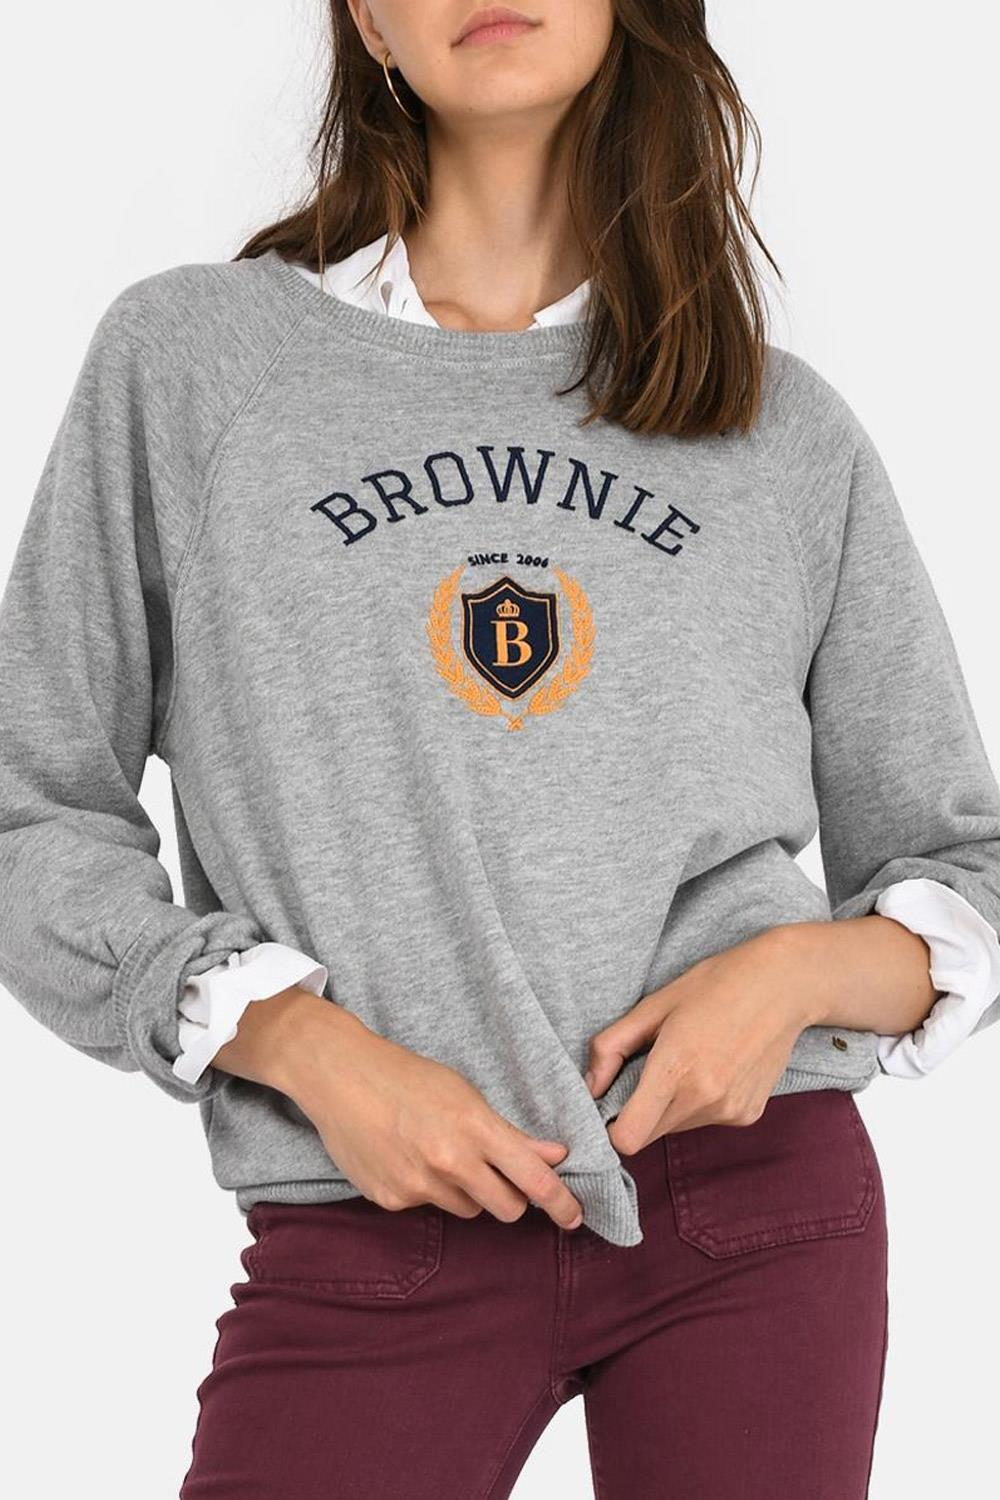 looks sudadera 21 buttons influencers Brownie, 35,90€